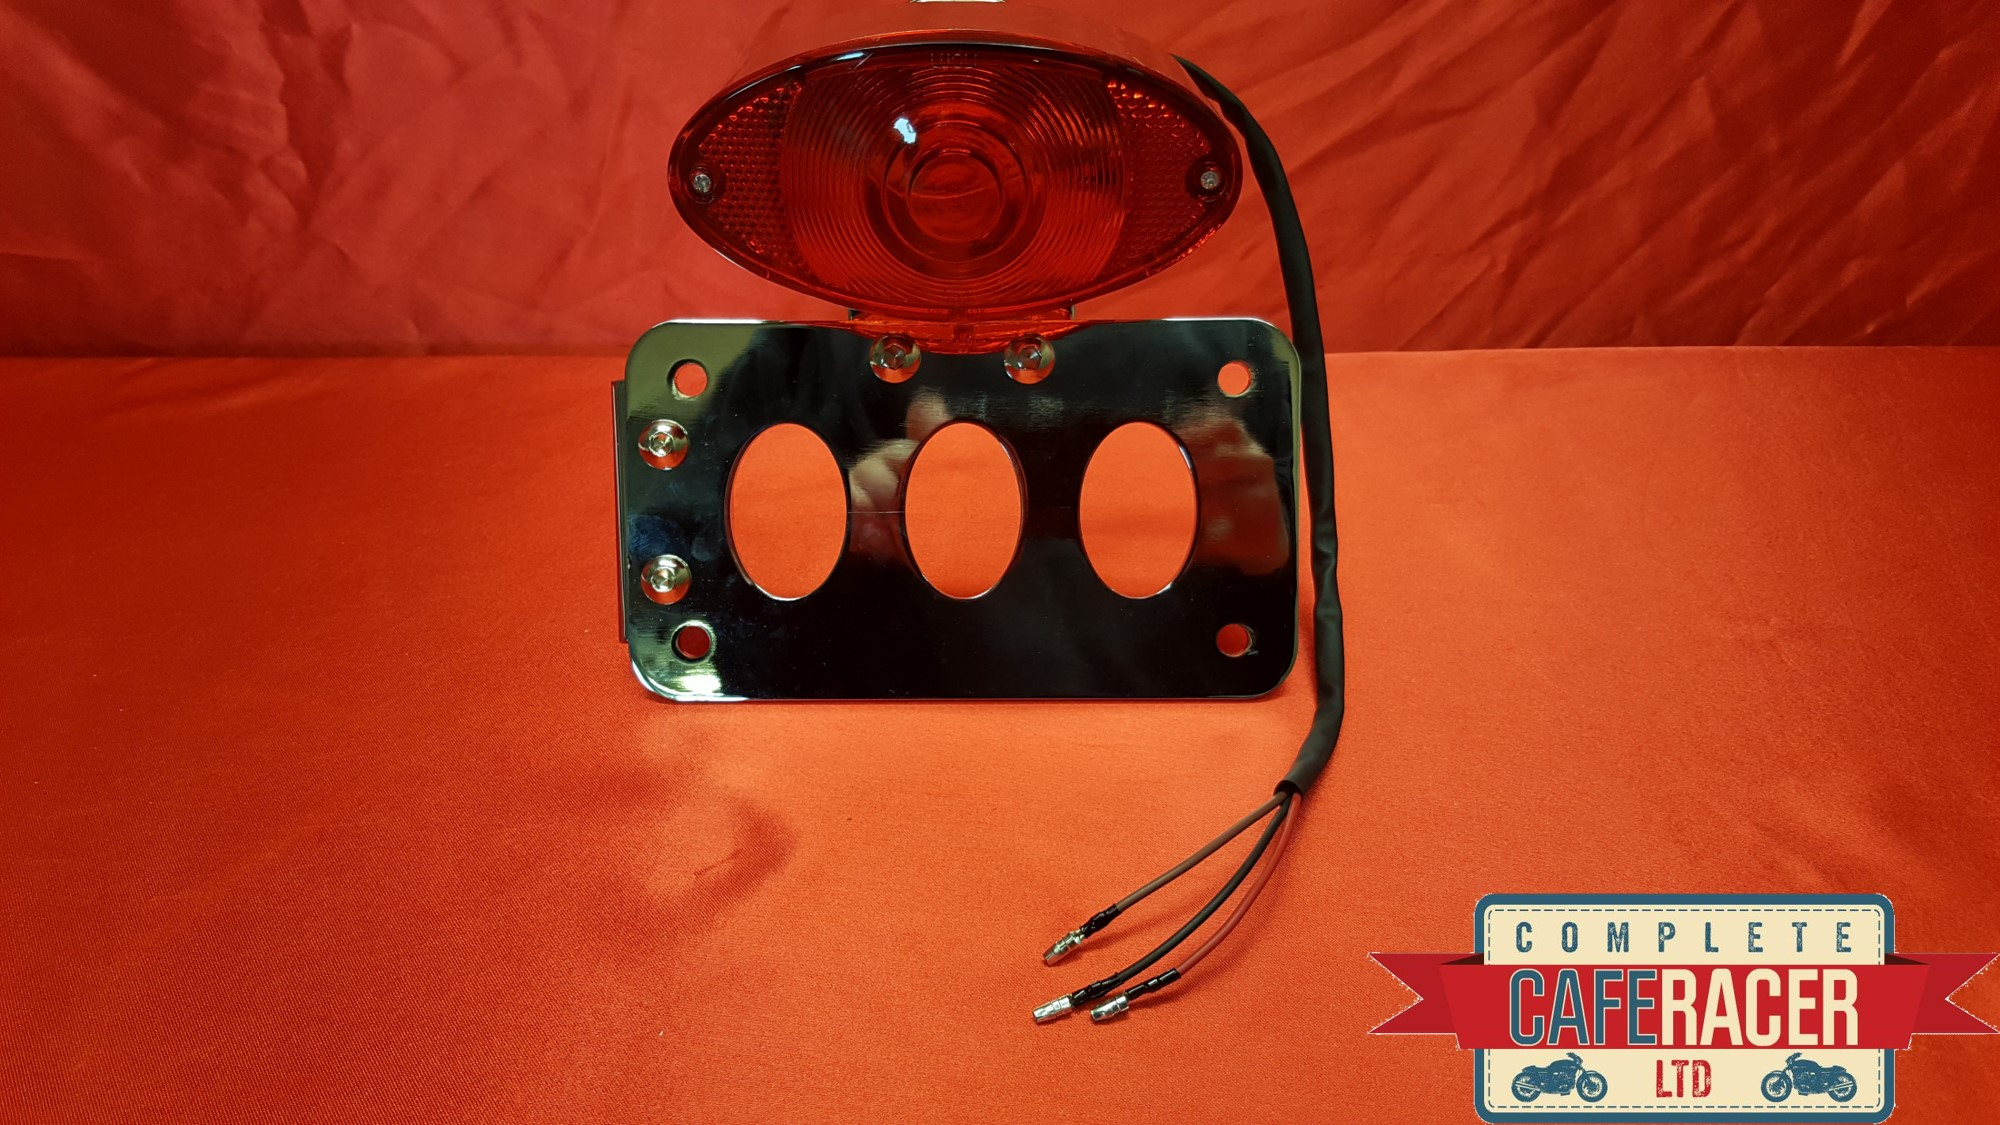 (SM1) CAFE RACER SIDE MOUNT NUMBER PLATE BRACKET WITH STOP TAIL LIGHT